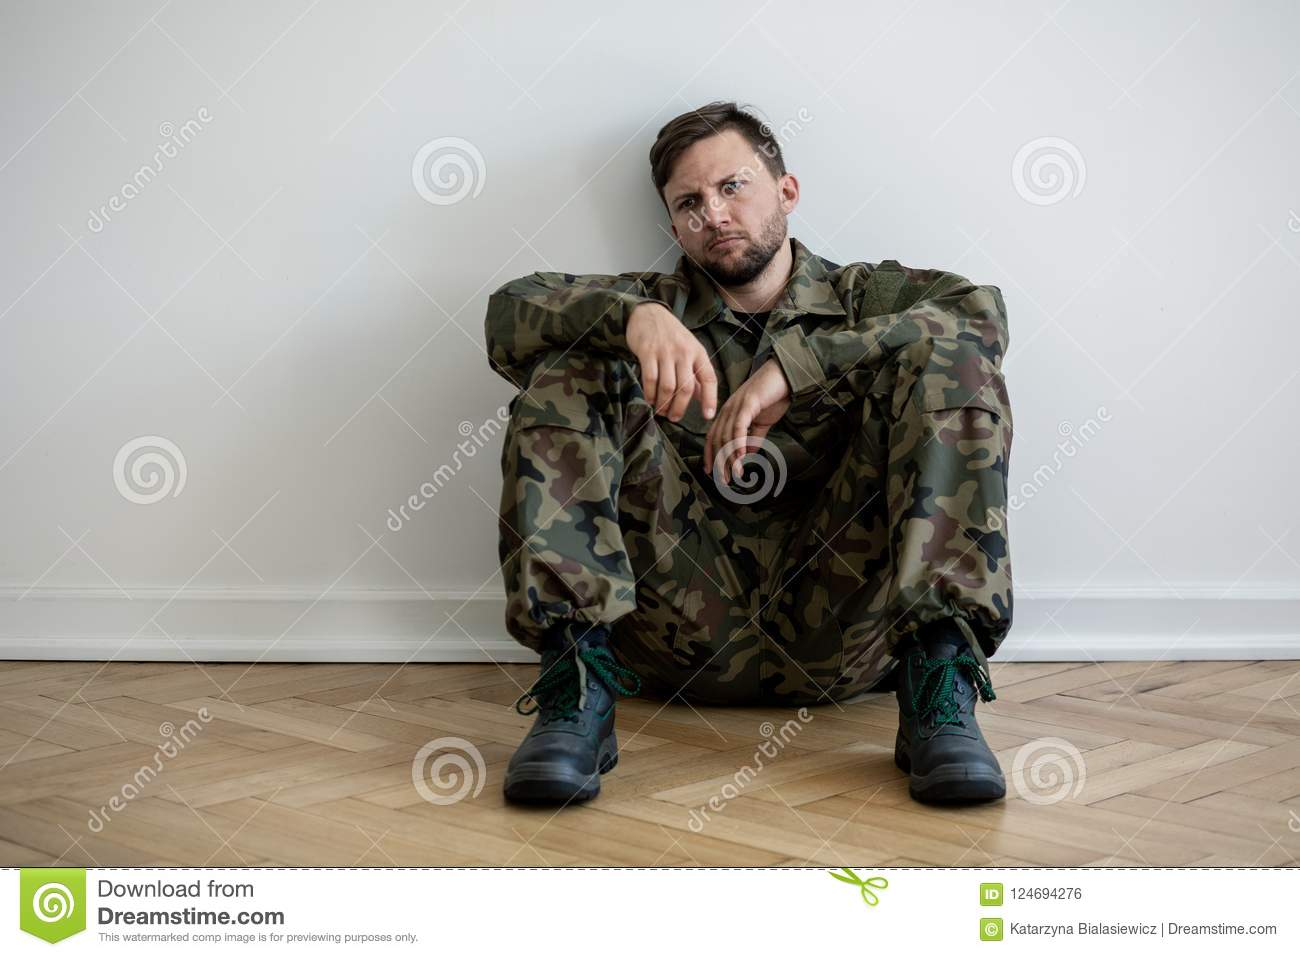 Sad and lonely soldier in green uniform with depression and war syndrome